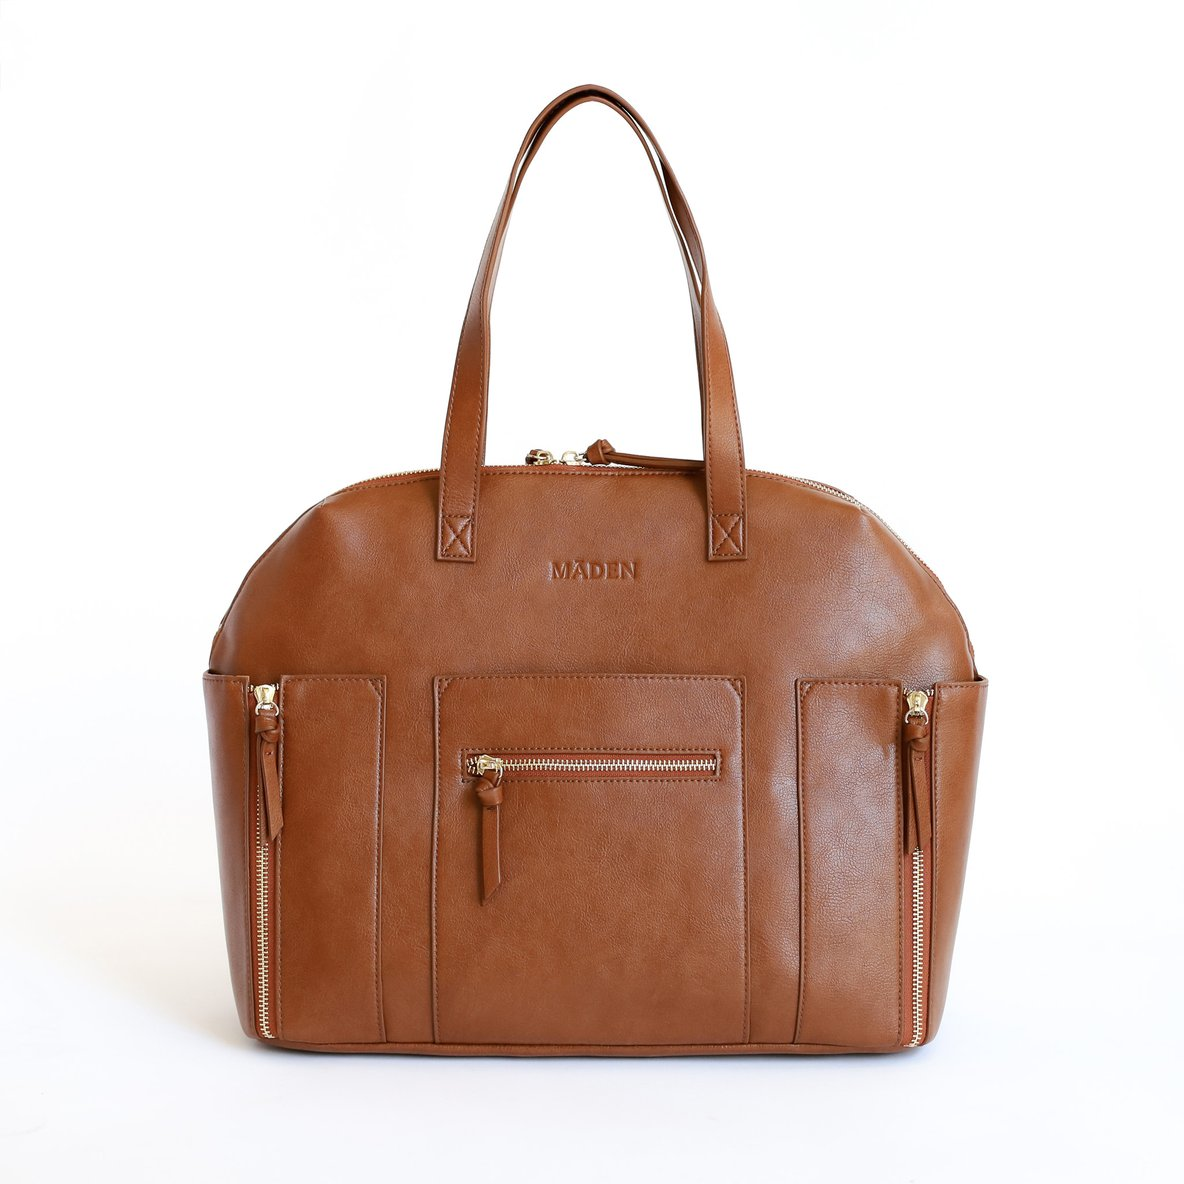 Maden Saddle Carryall Convertible Tote